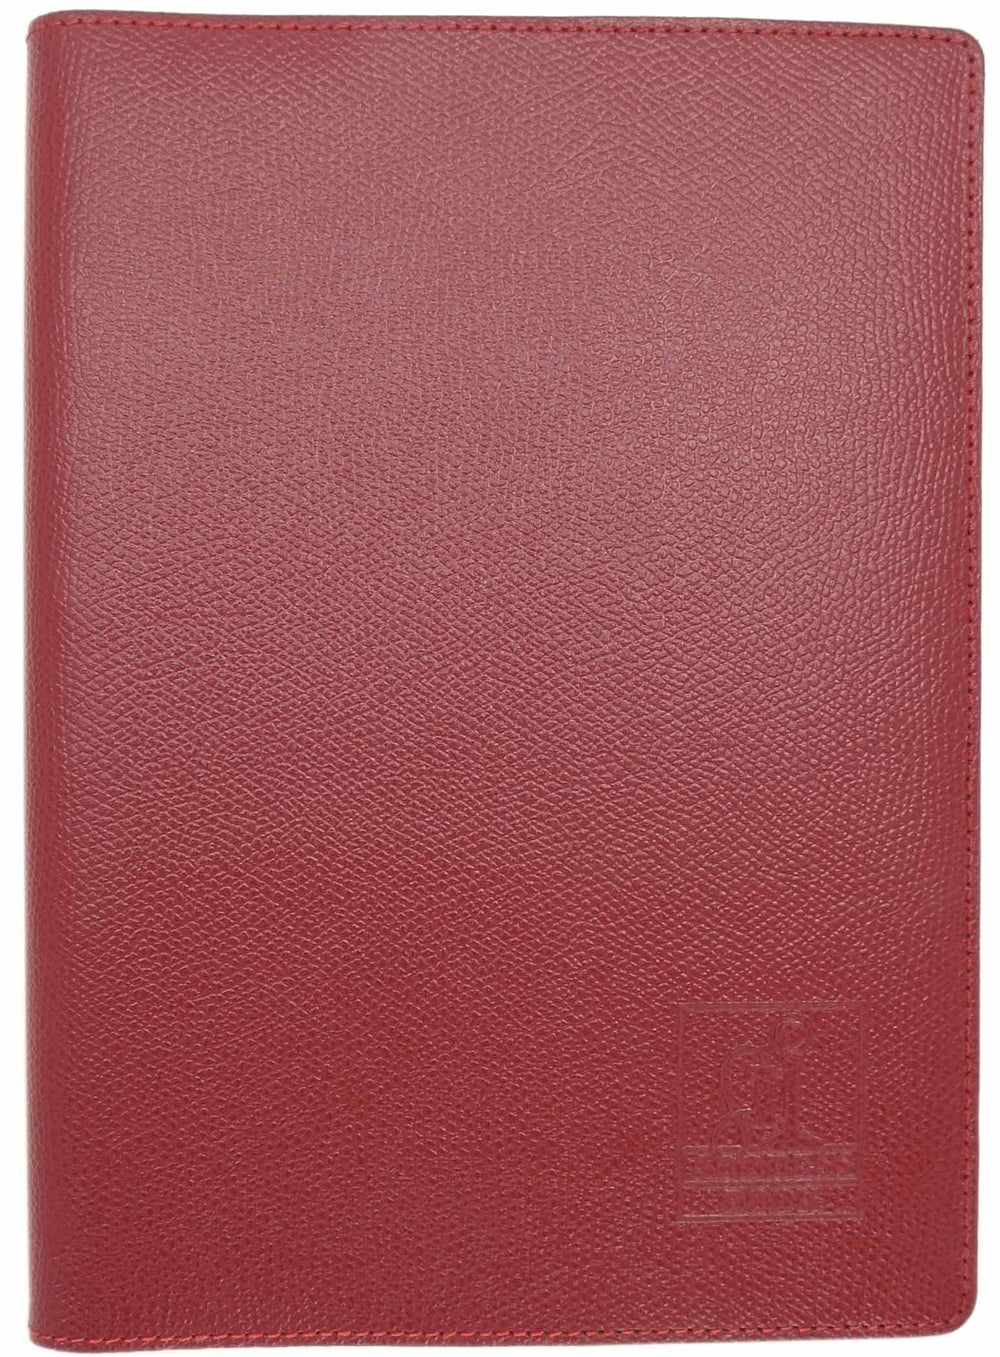 Exacompta Prestige Address Book - Red